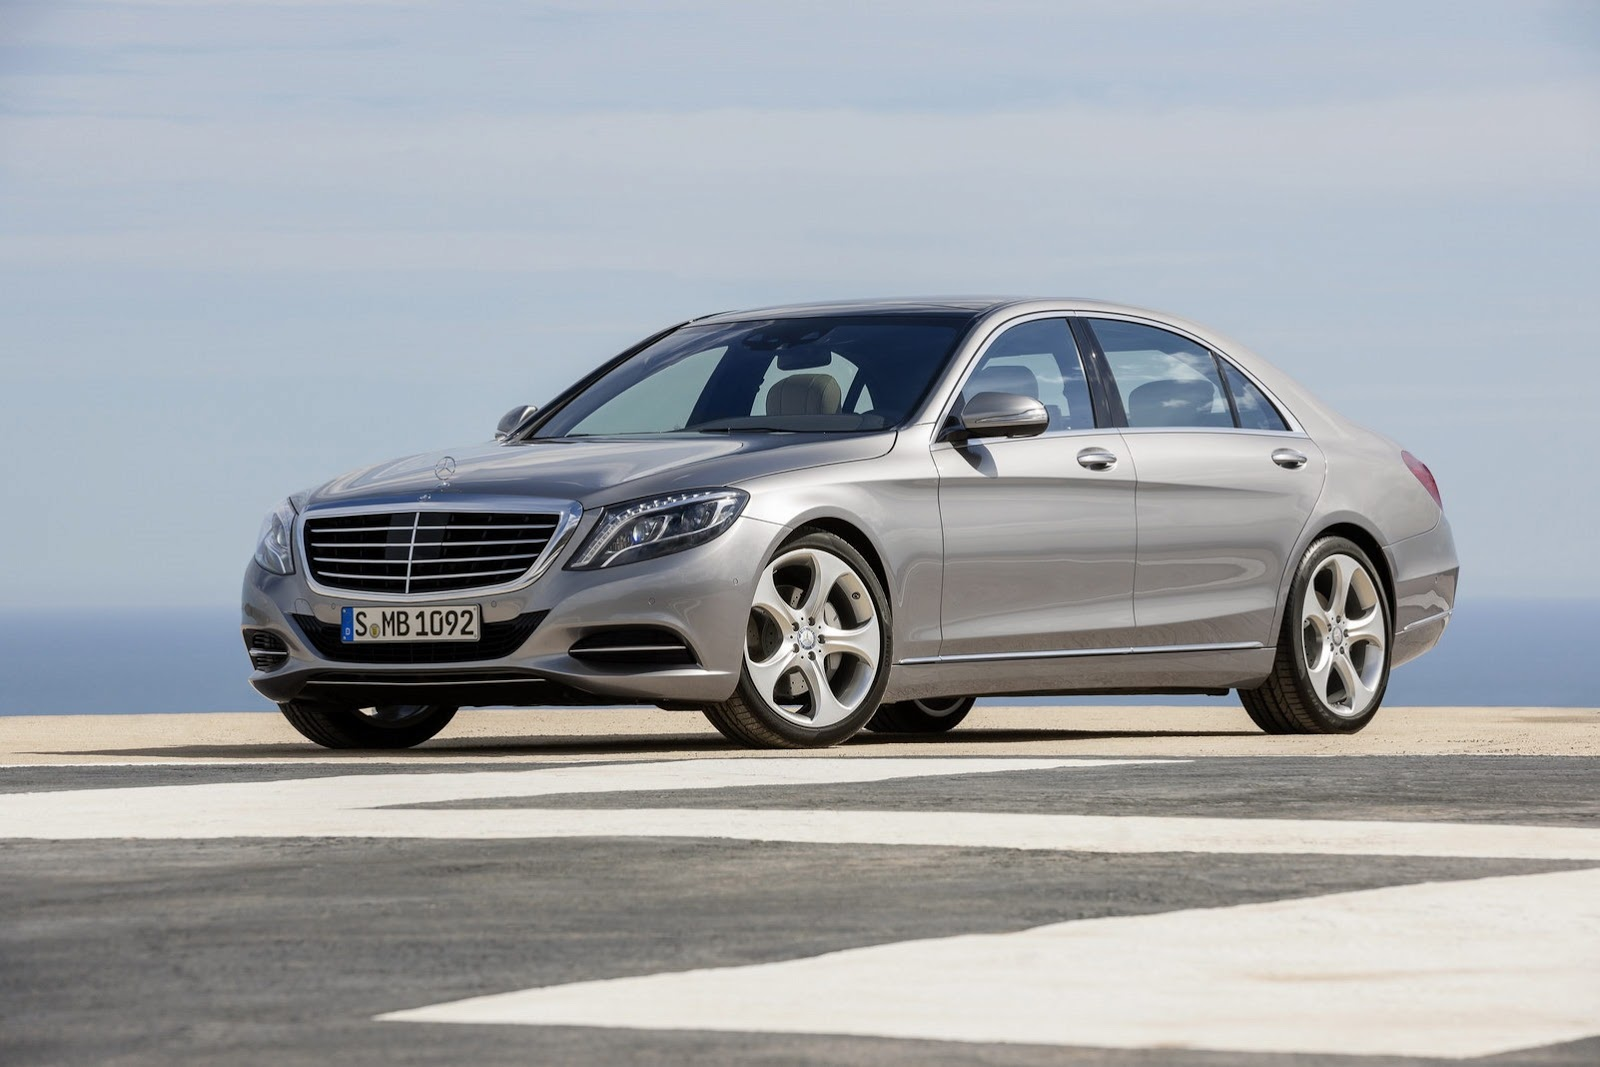 2014 Mercedes Benz S-Class - SMADE MEDIA (41)